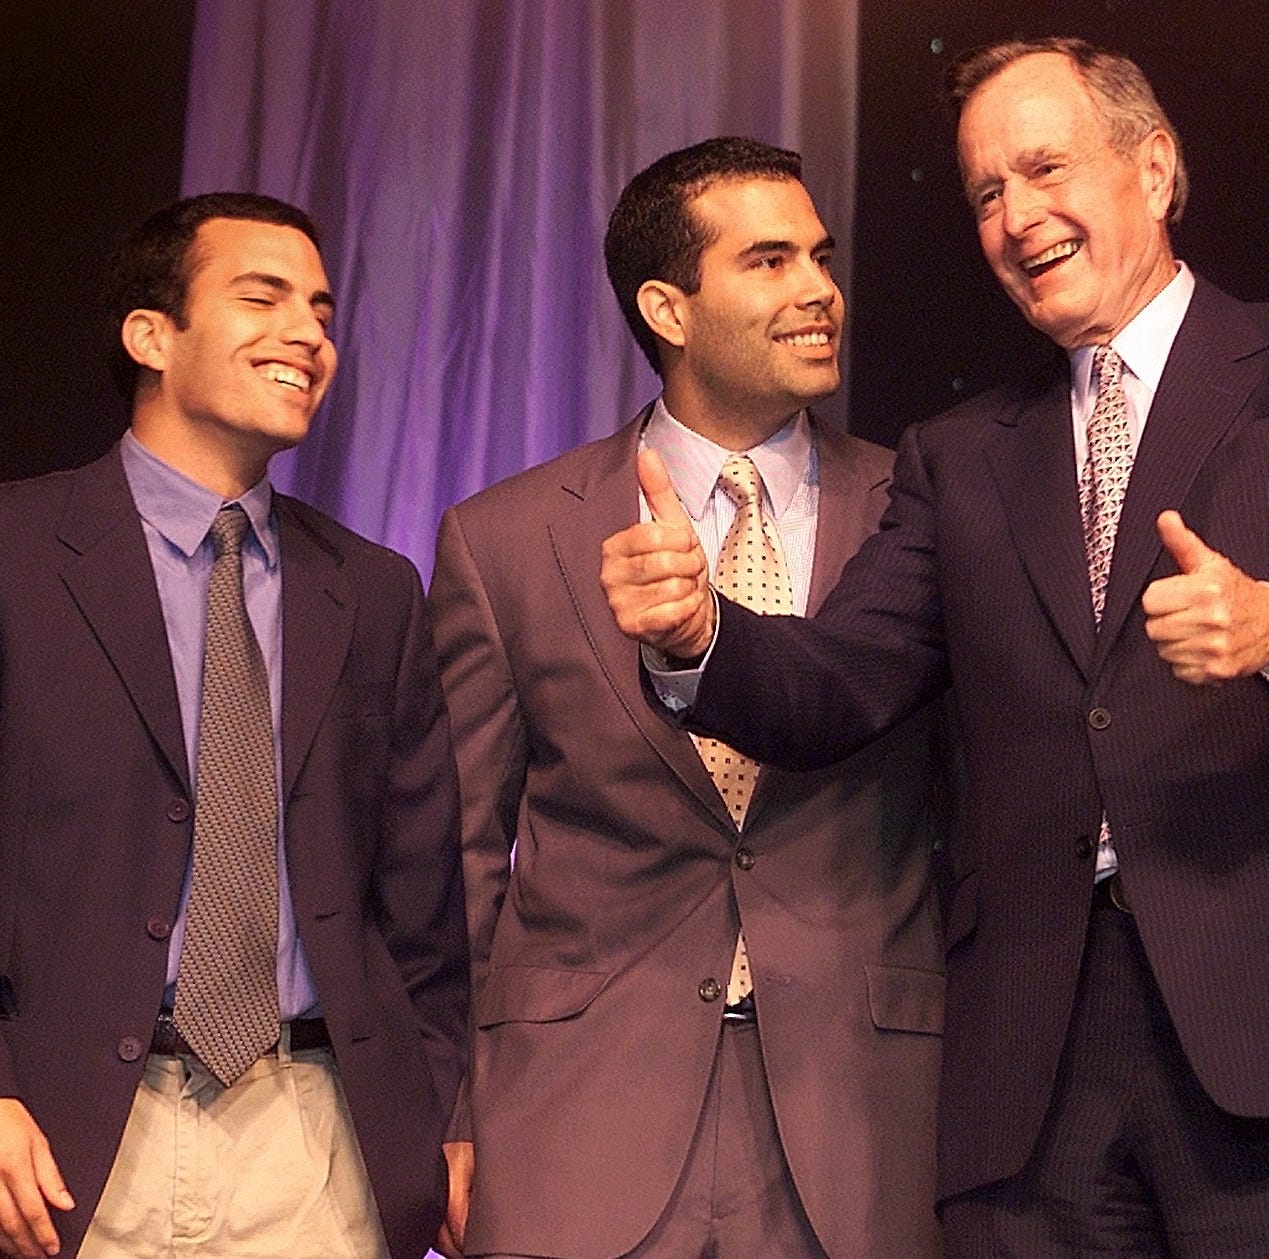 George P. Bush's tribute to his grandfather: The man I simply called 'Gampy'